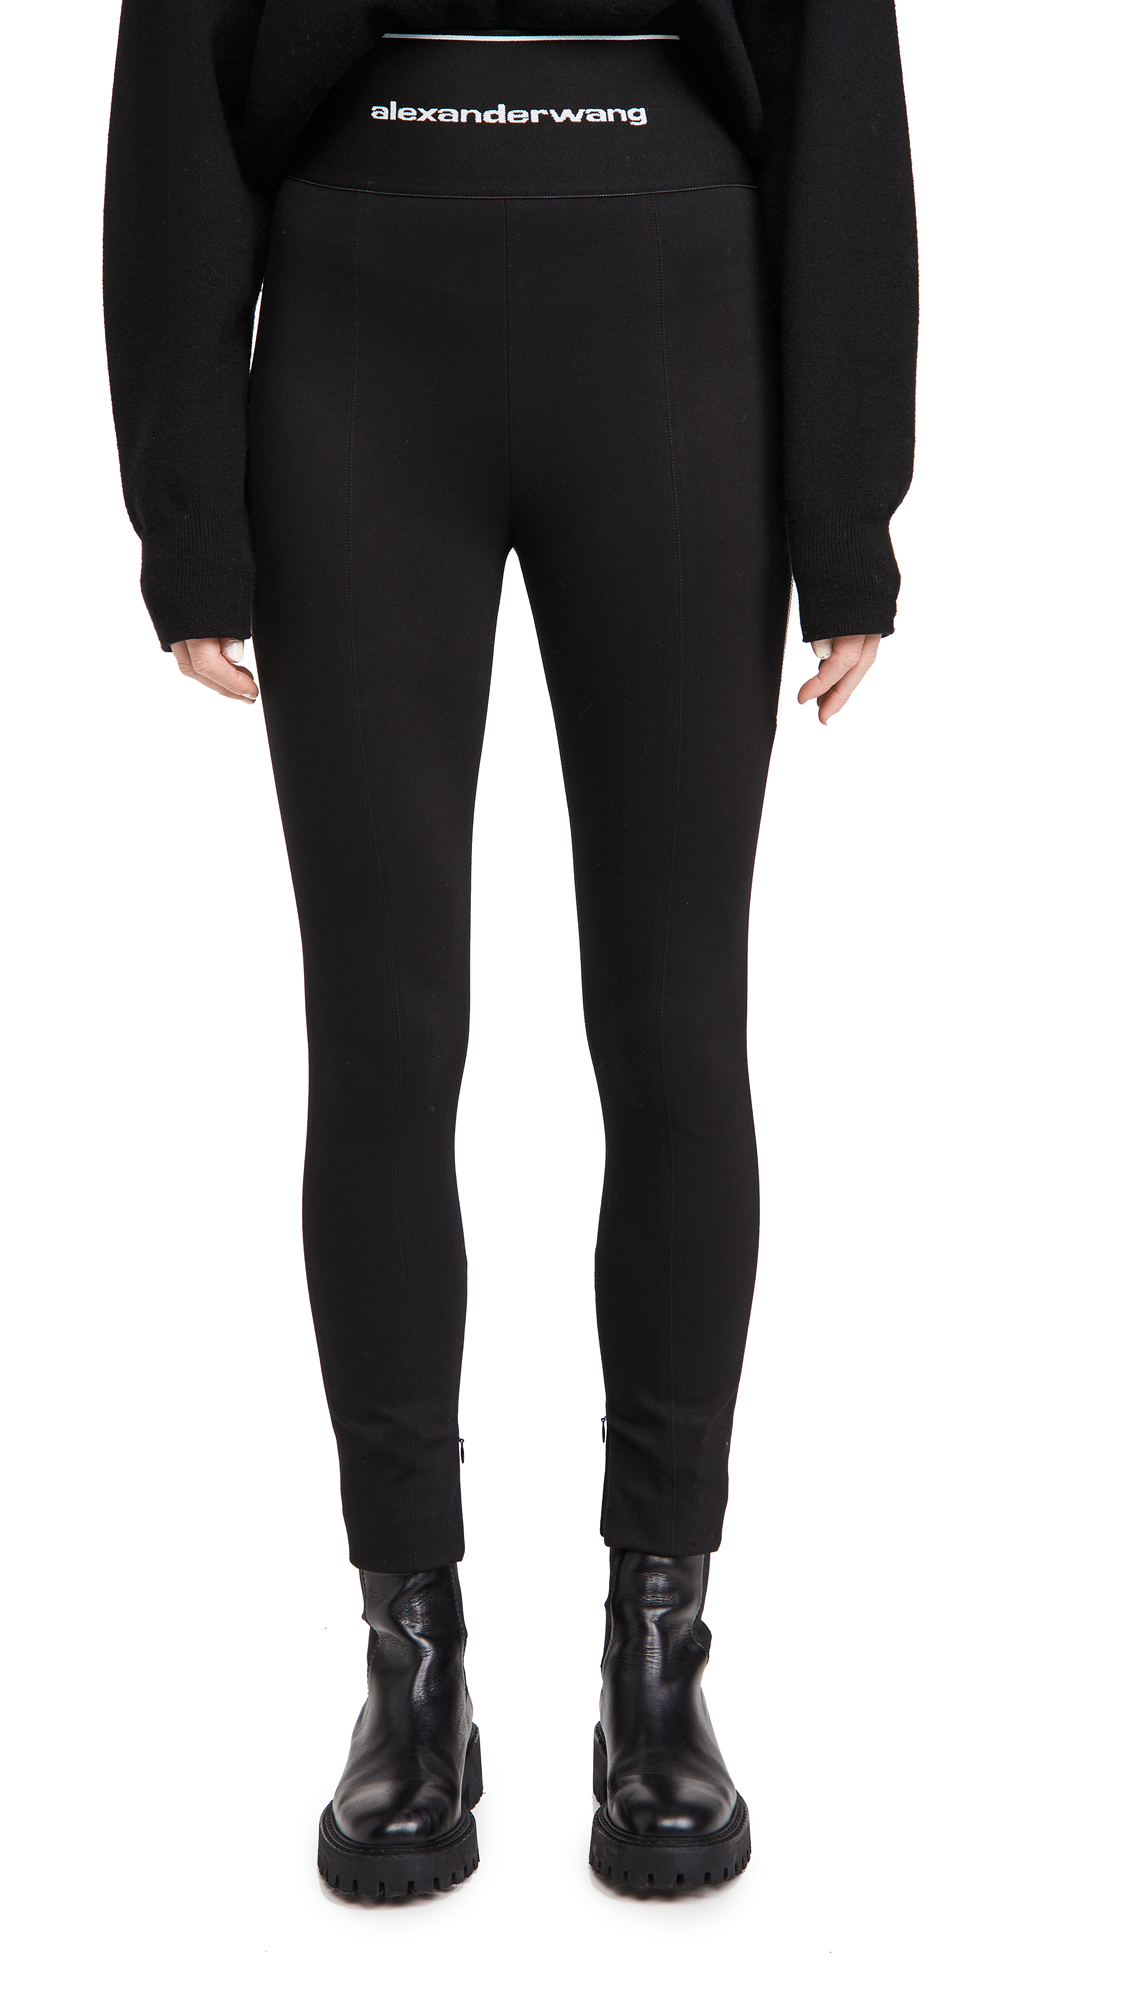 Alexander Wang Leggings with Exposed Zipper